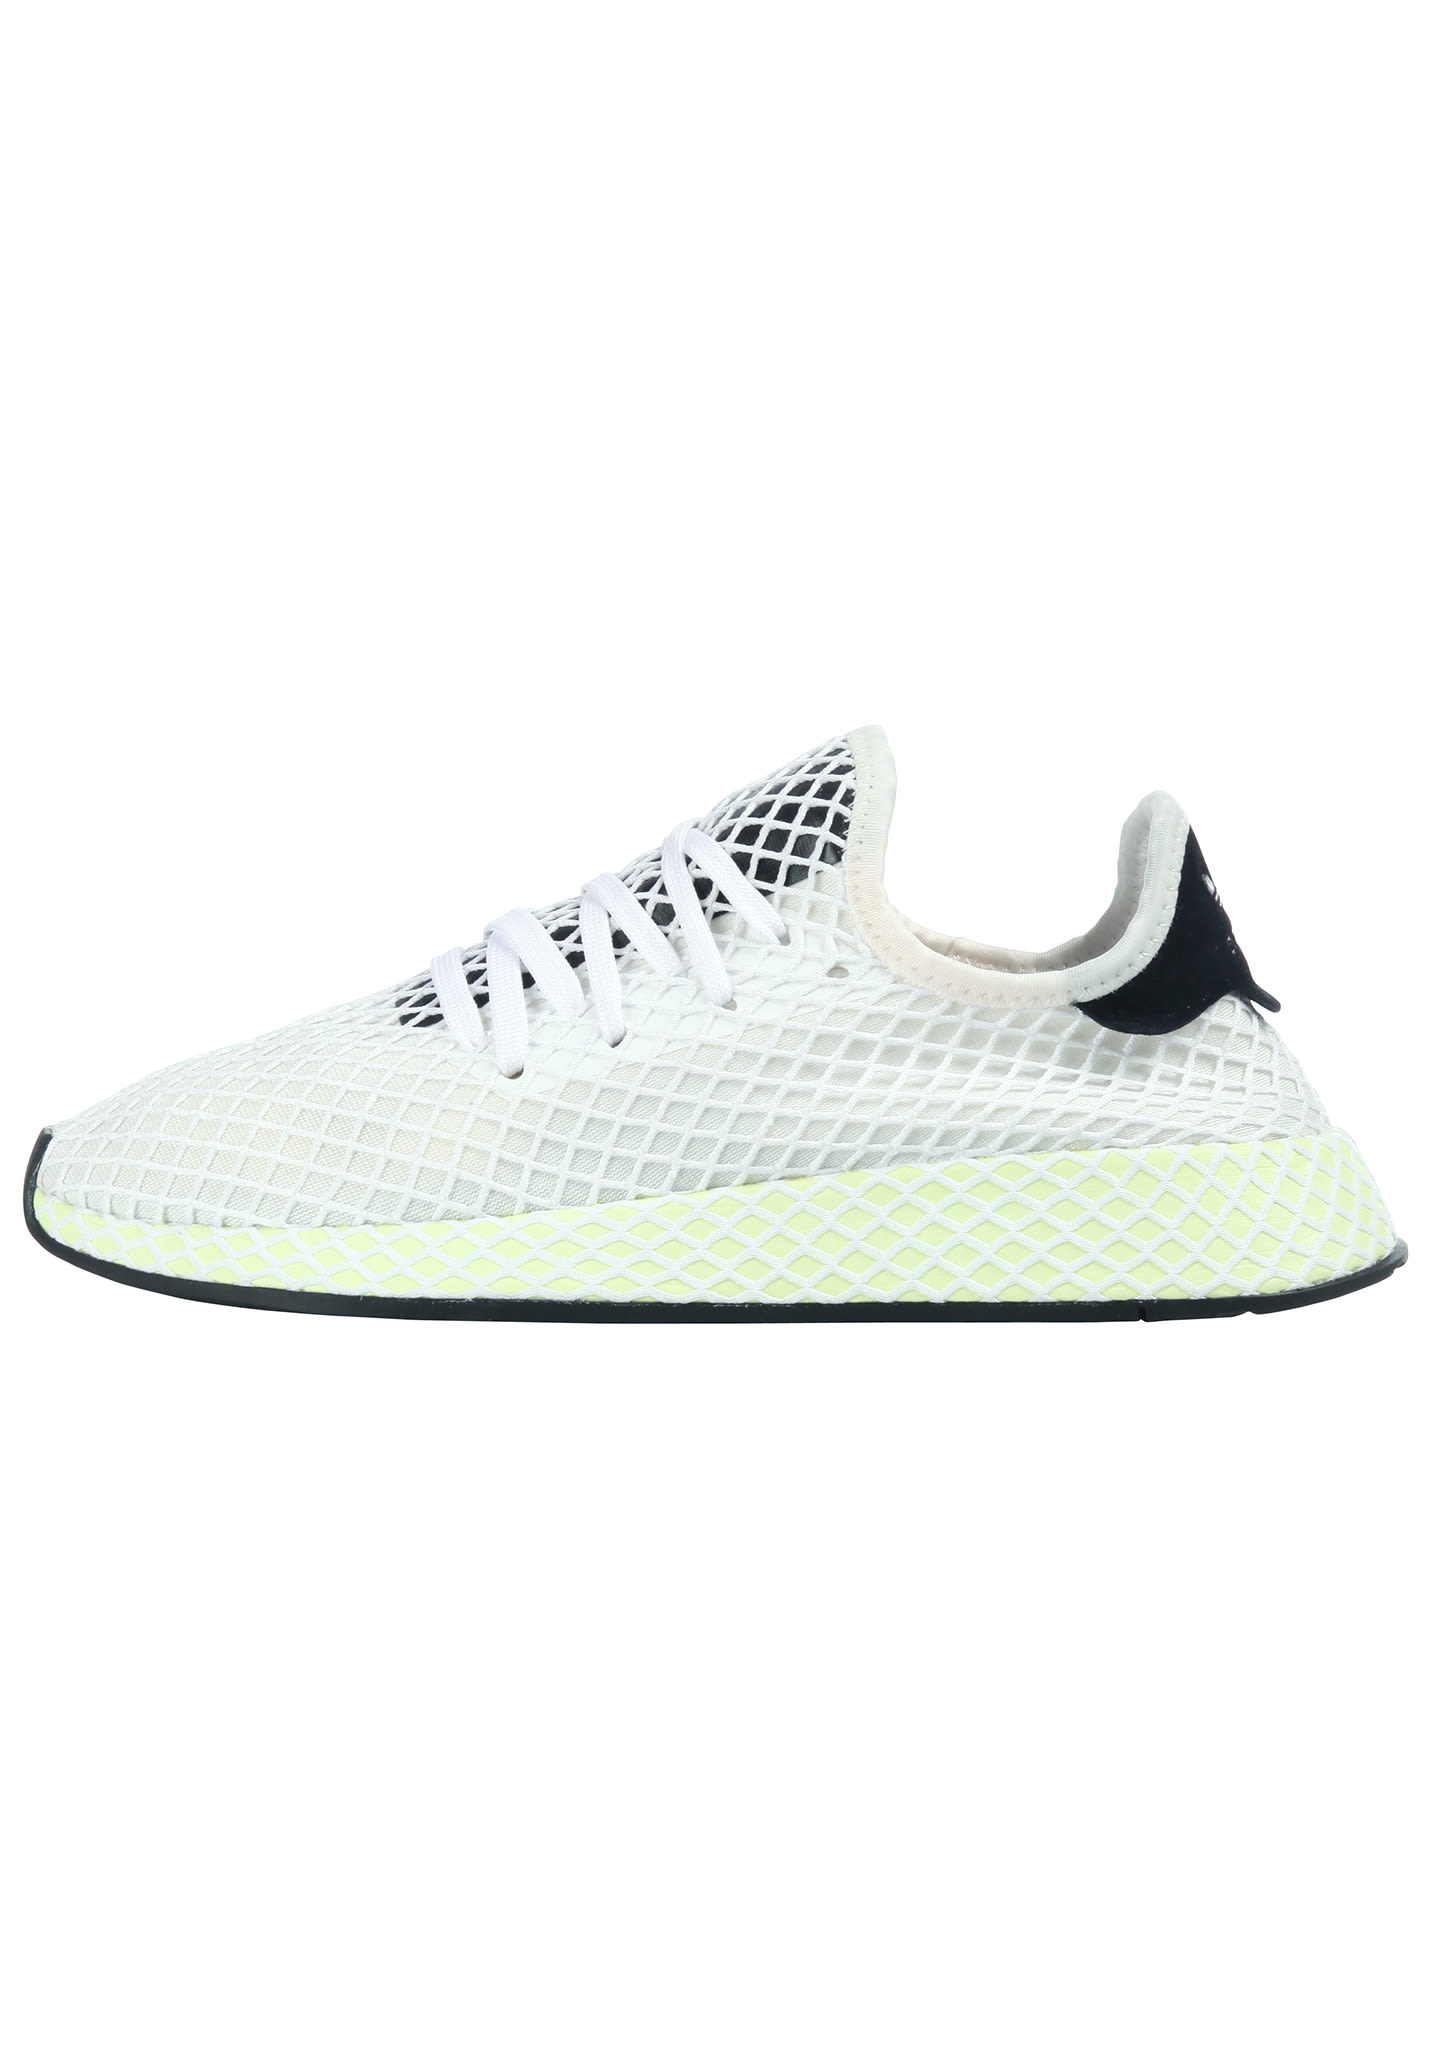 reputable site 1873b 9f368 Baskets Deerupt Blanc Adidas Planet Sports Runner 0ExwY7